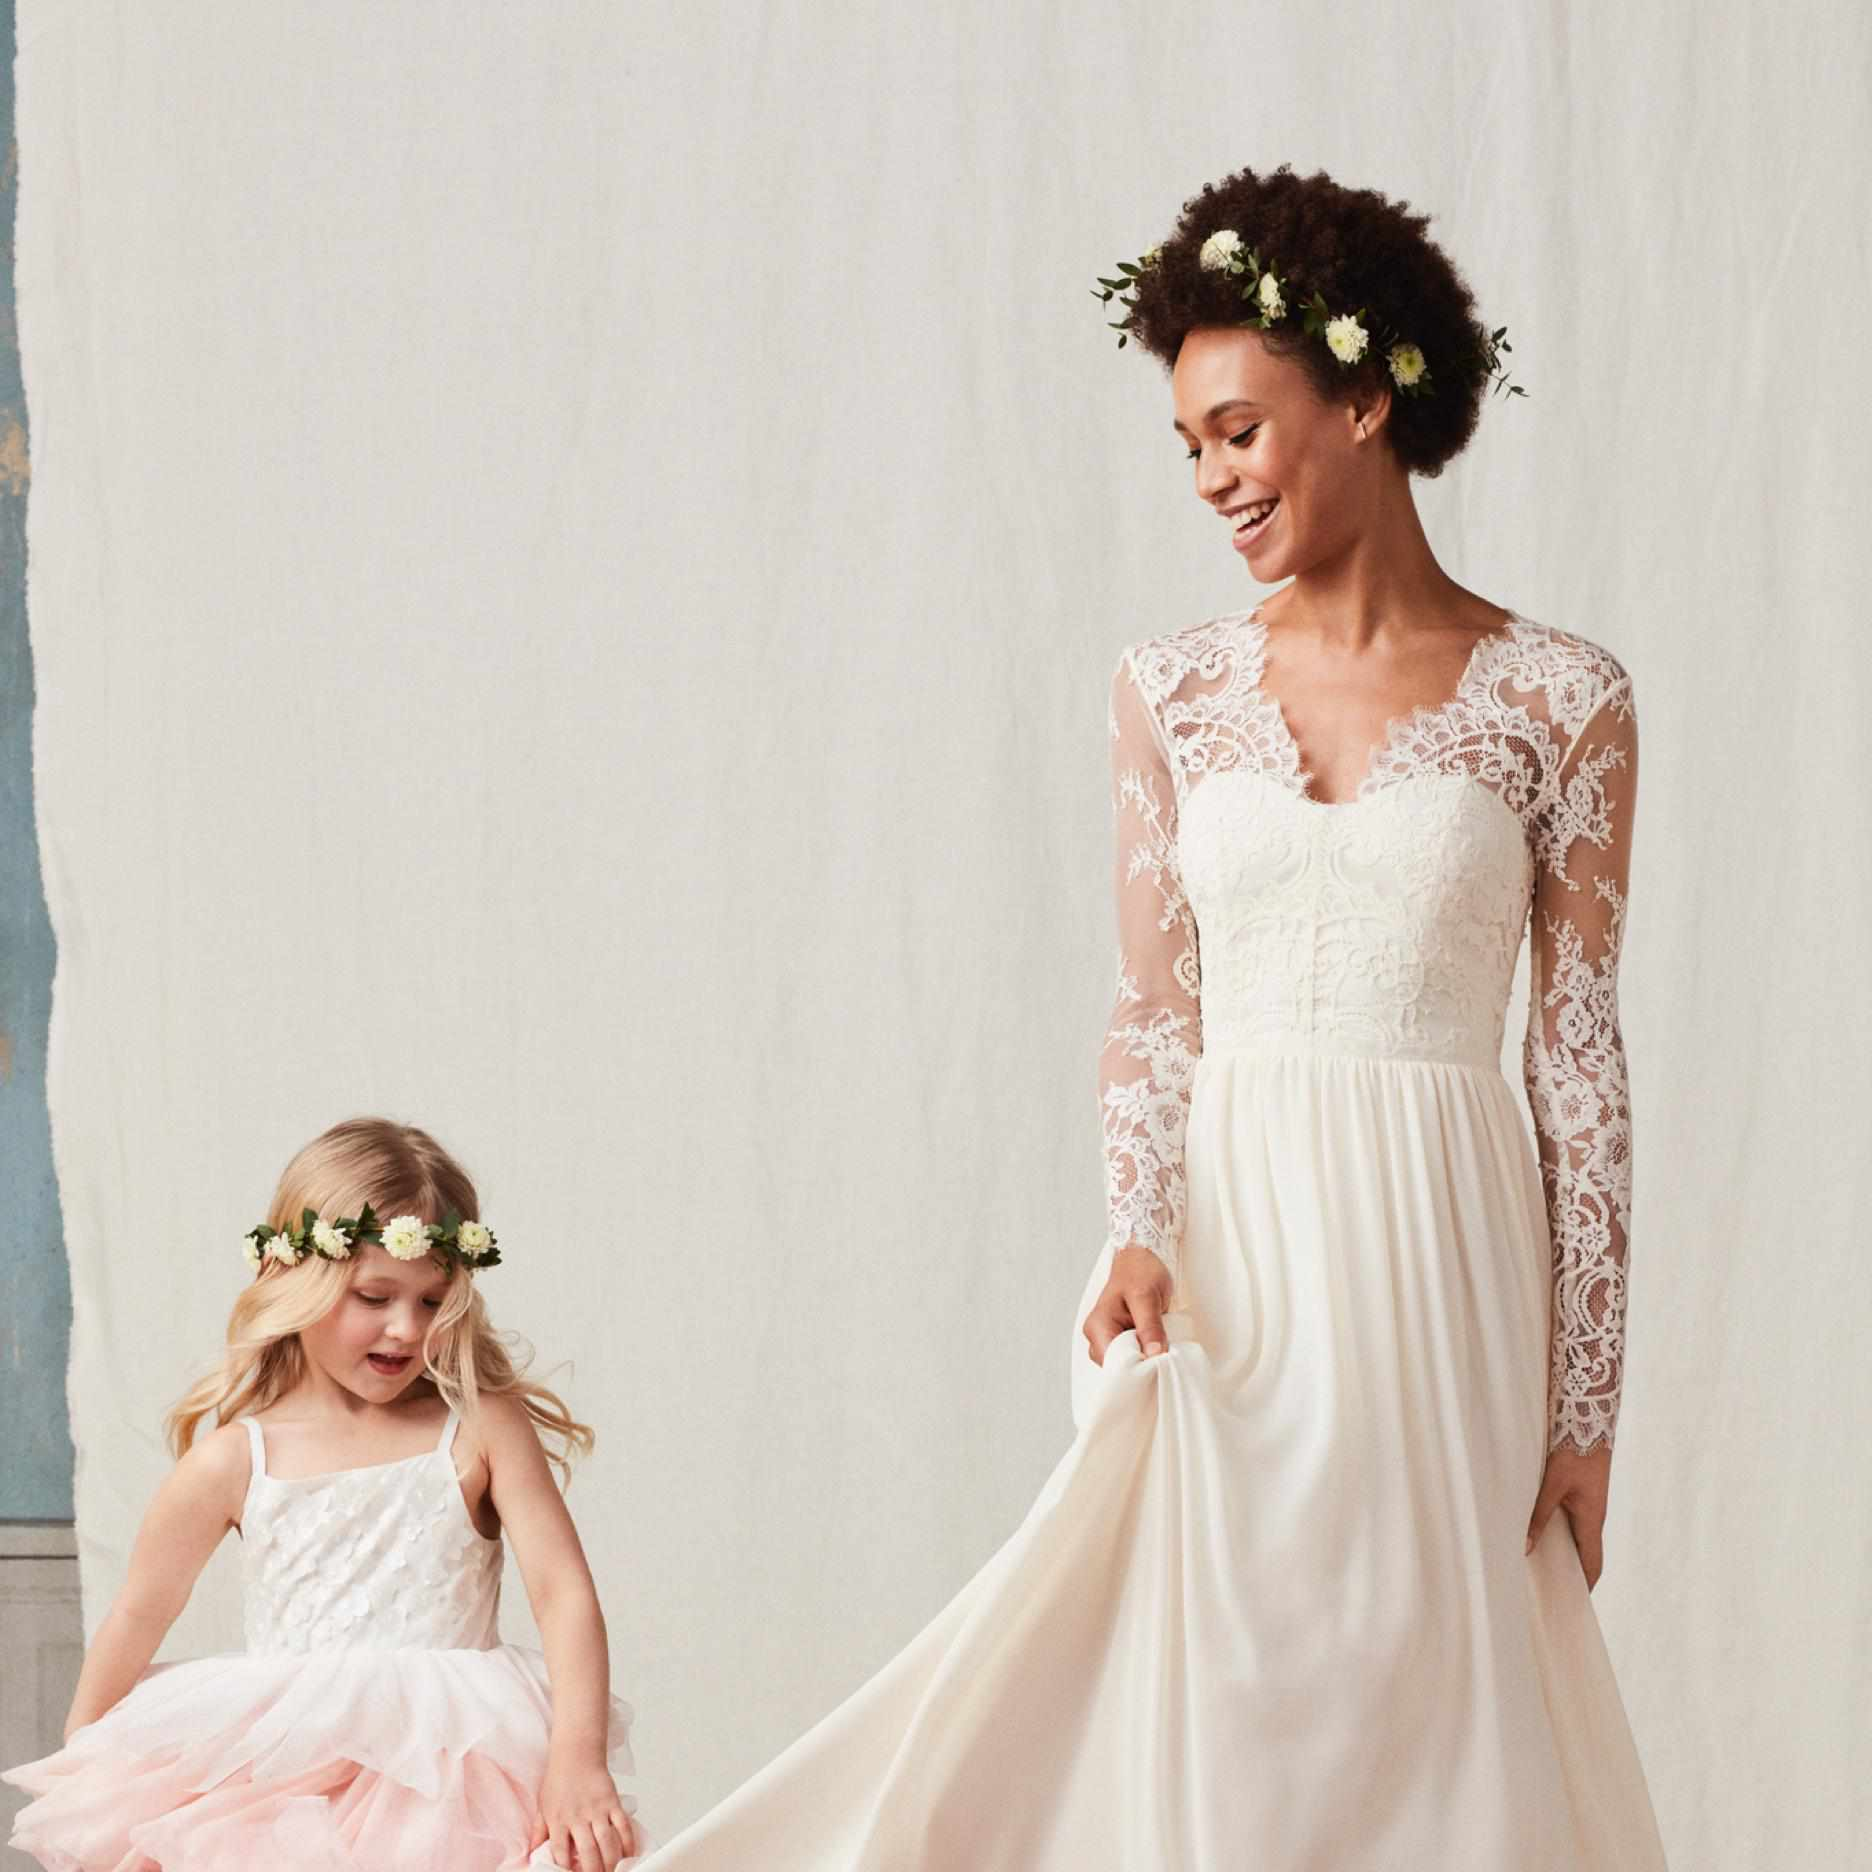 Hm Wedding Dress.Attention All Brides And Wedding Guests H M Wedding Shop Has